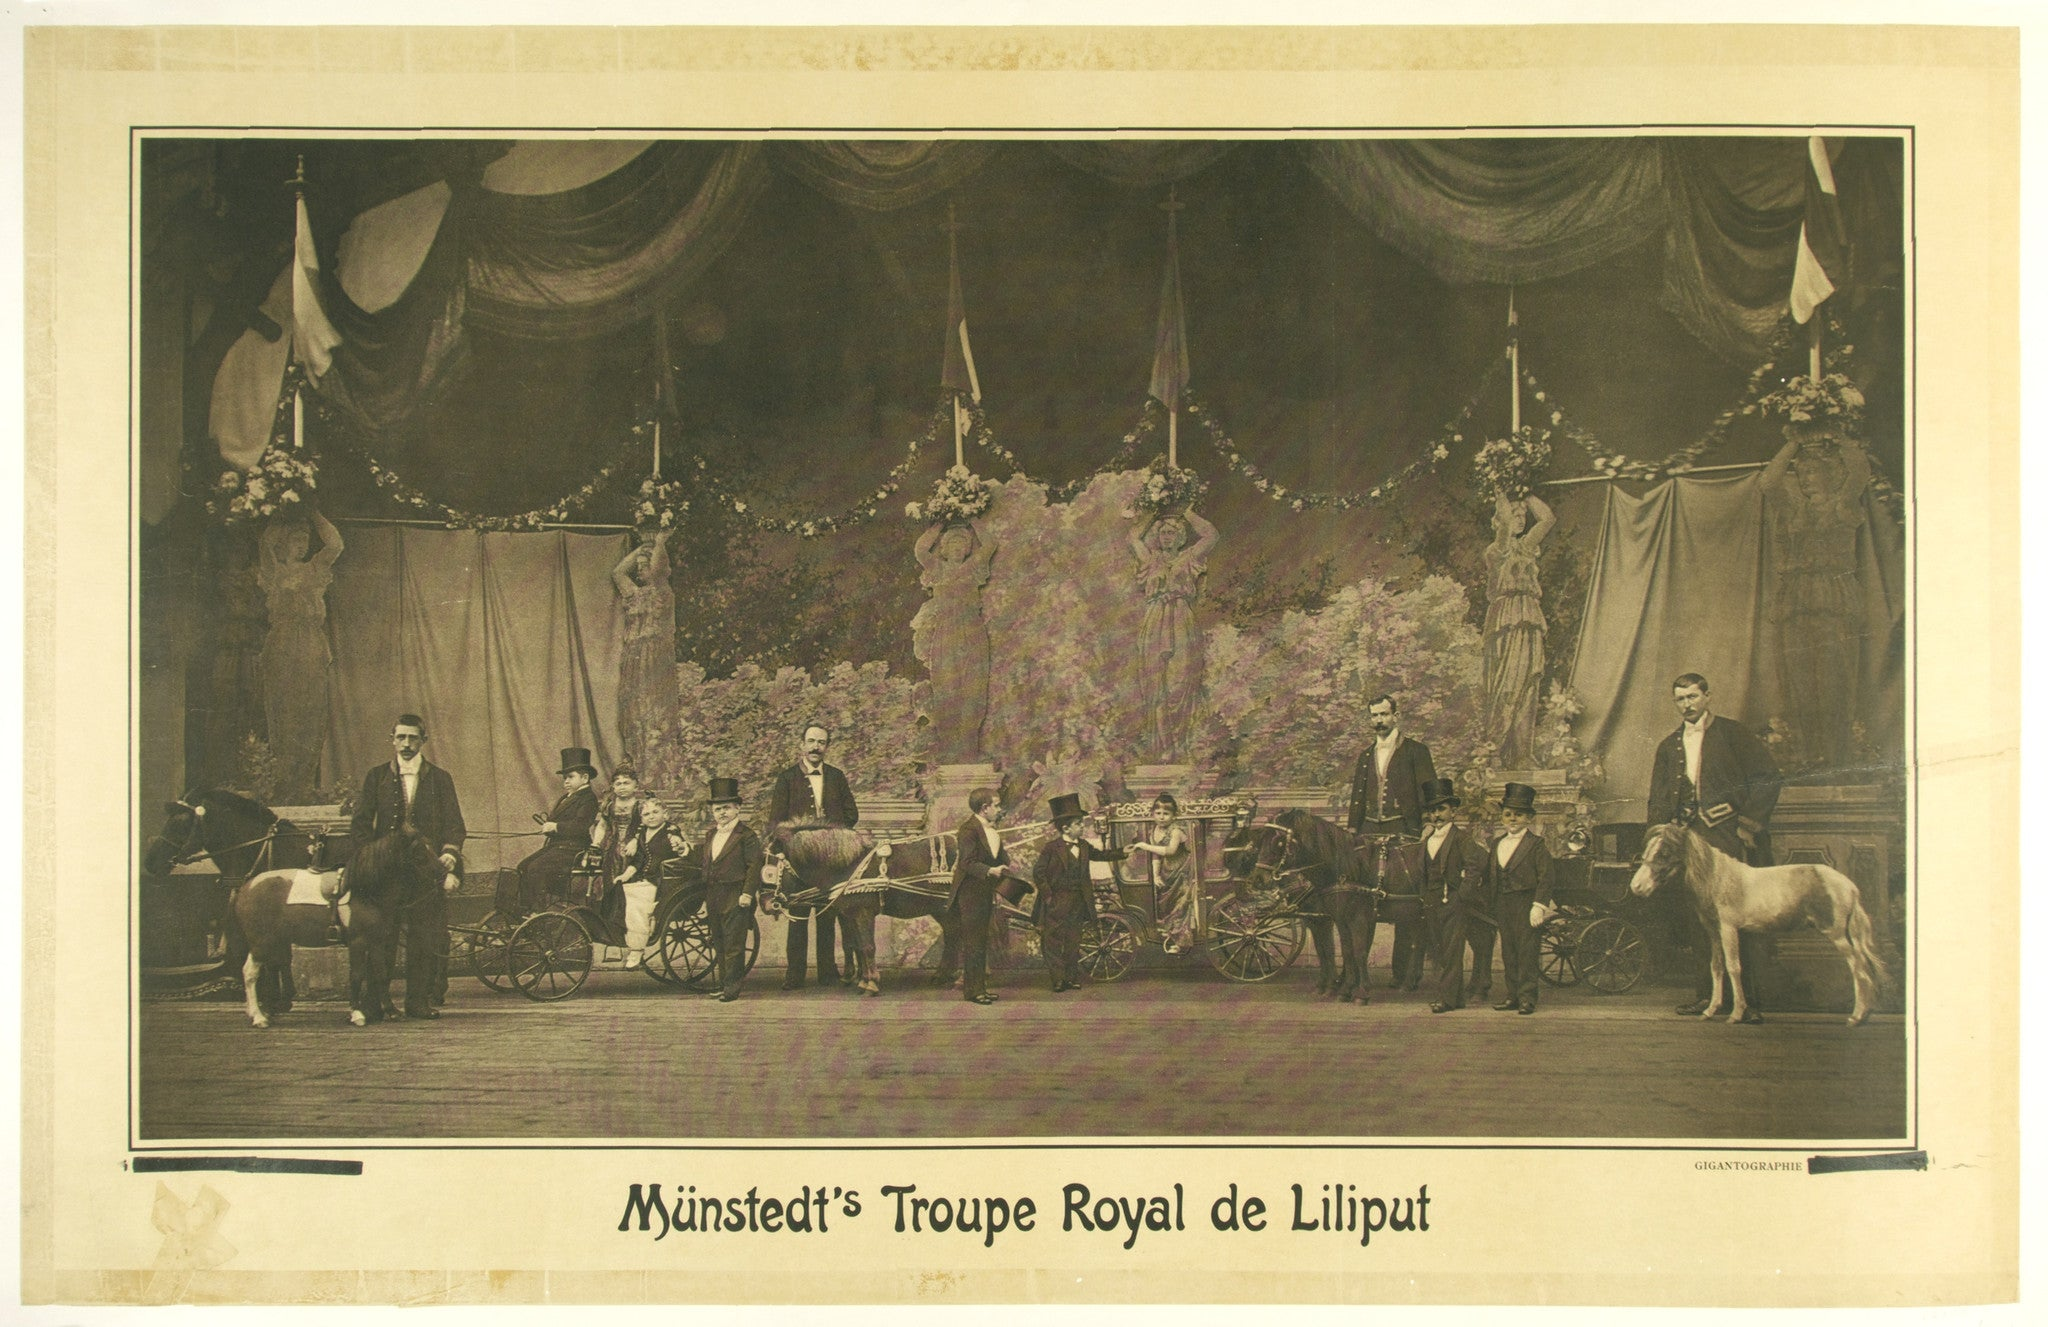 Munstedt's Troupe Royal de Liliput